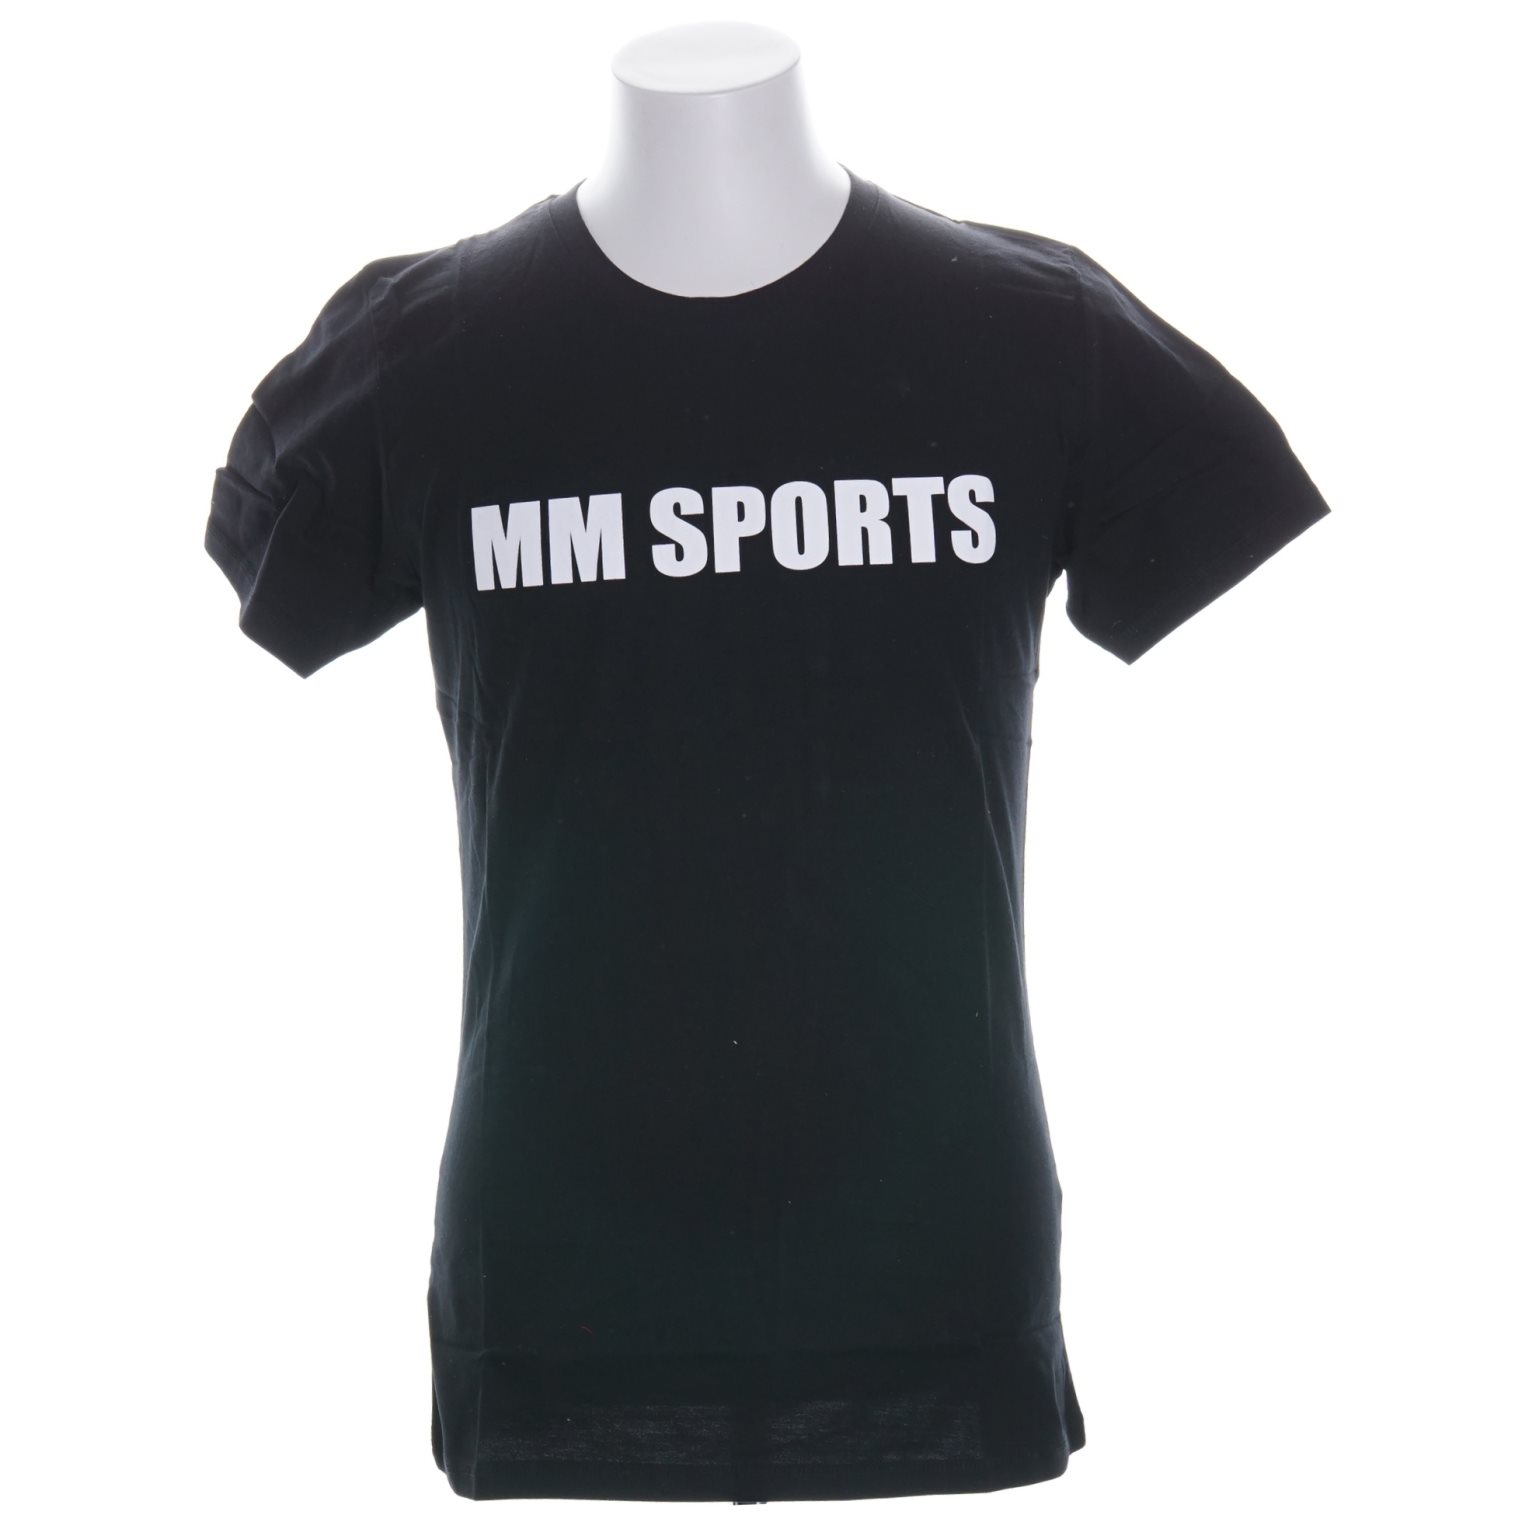 mm sports tröja